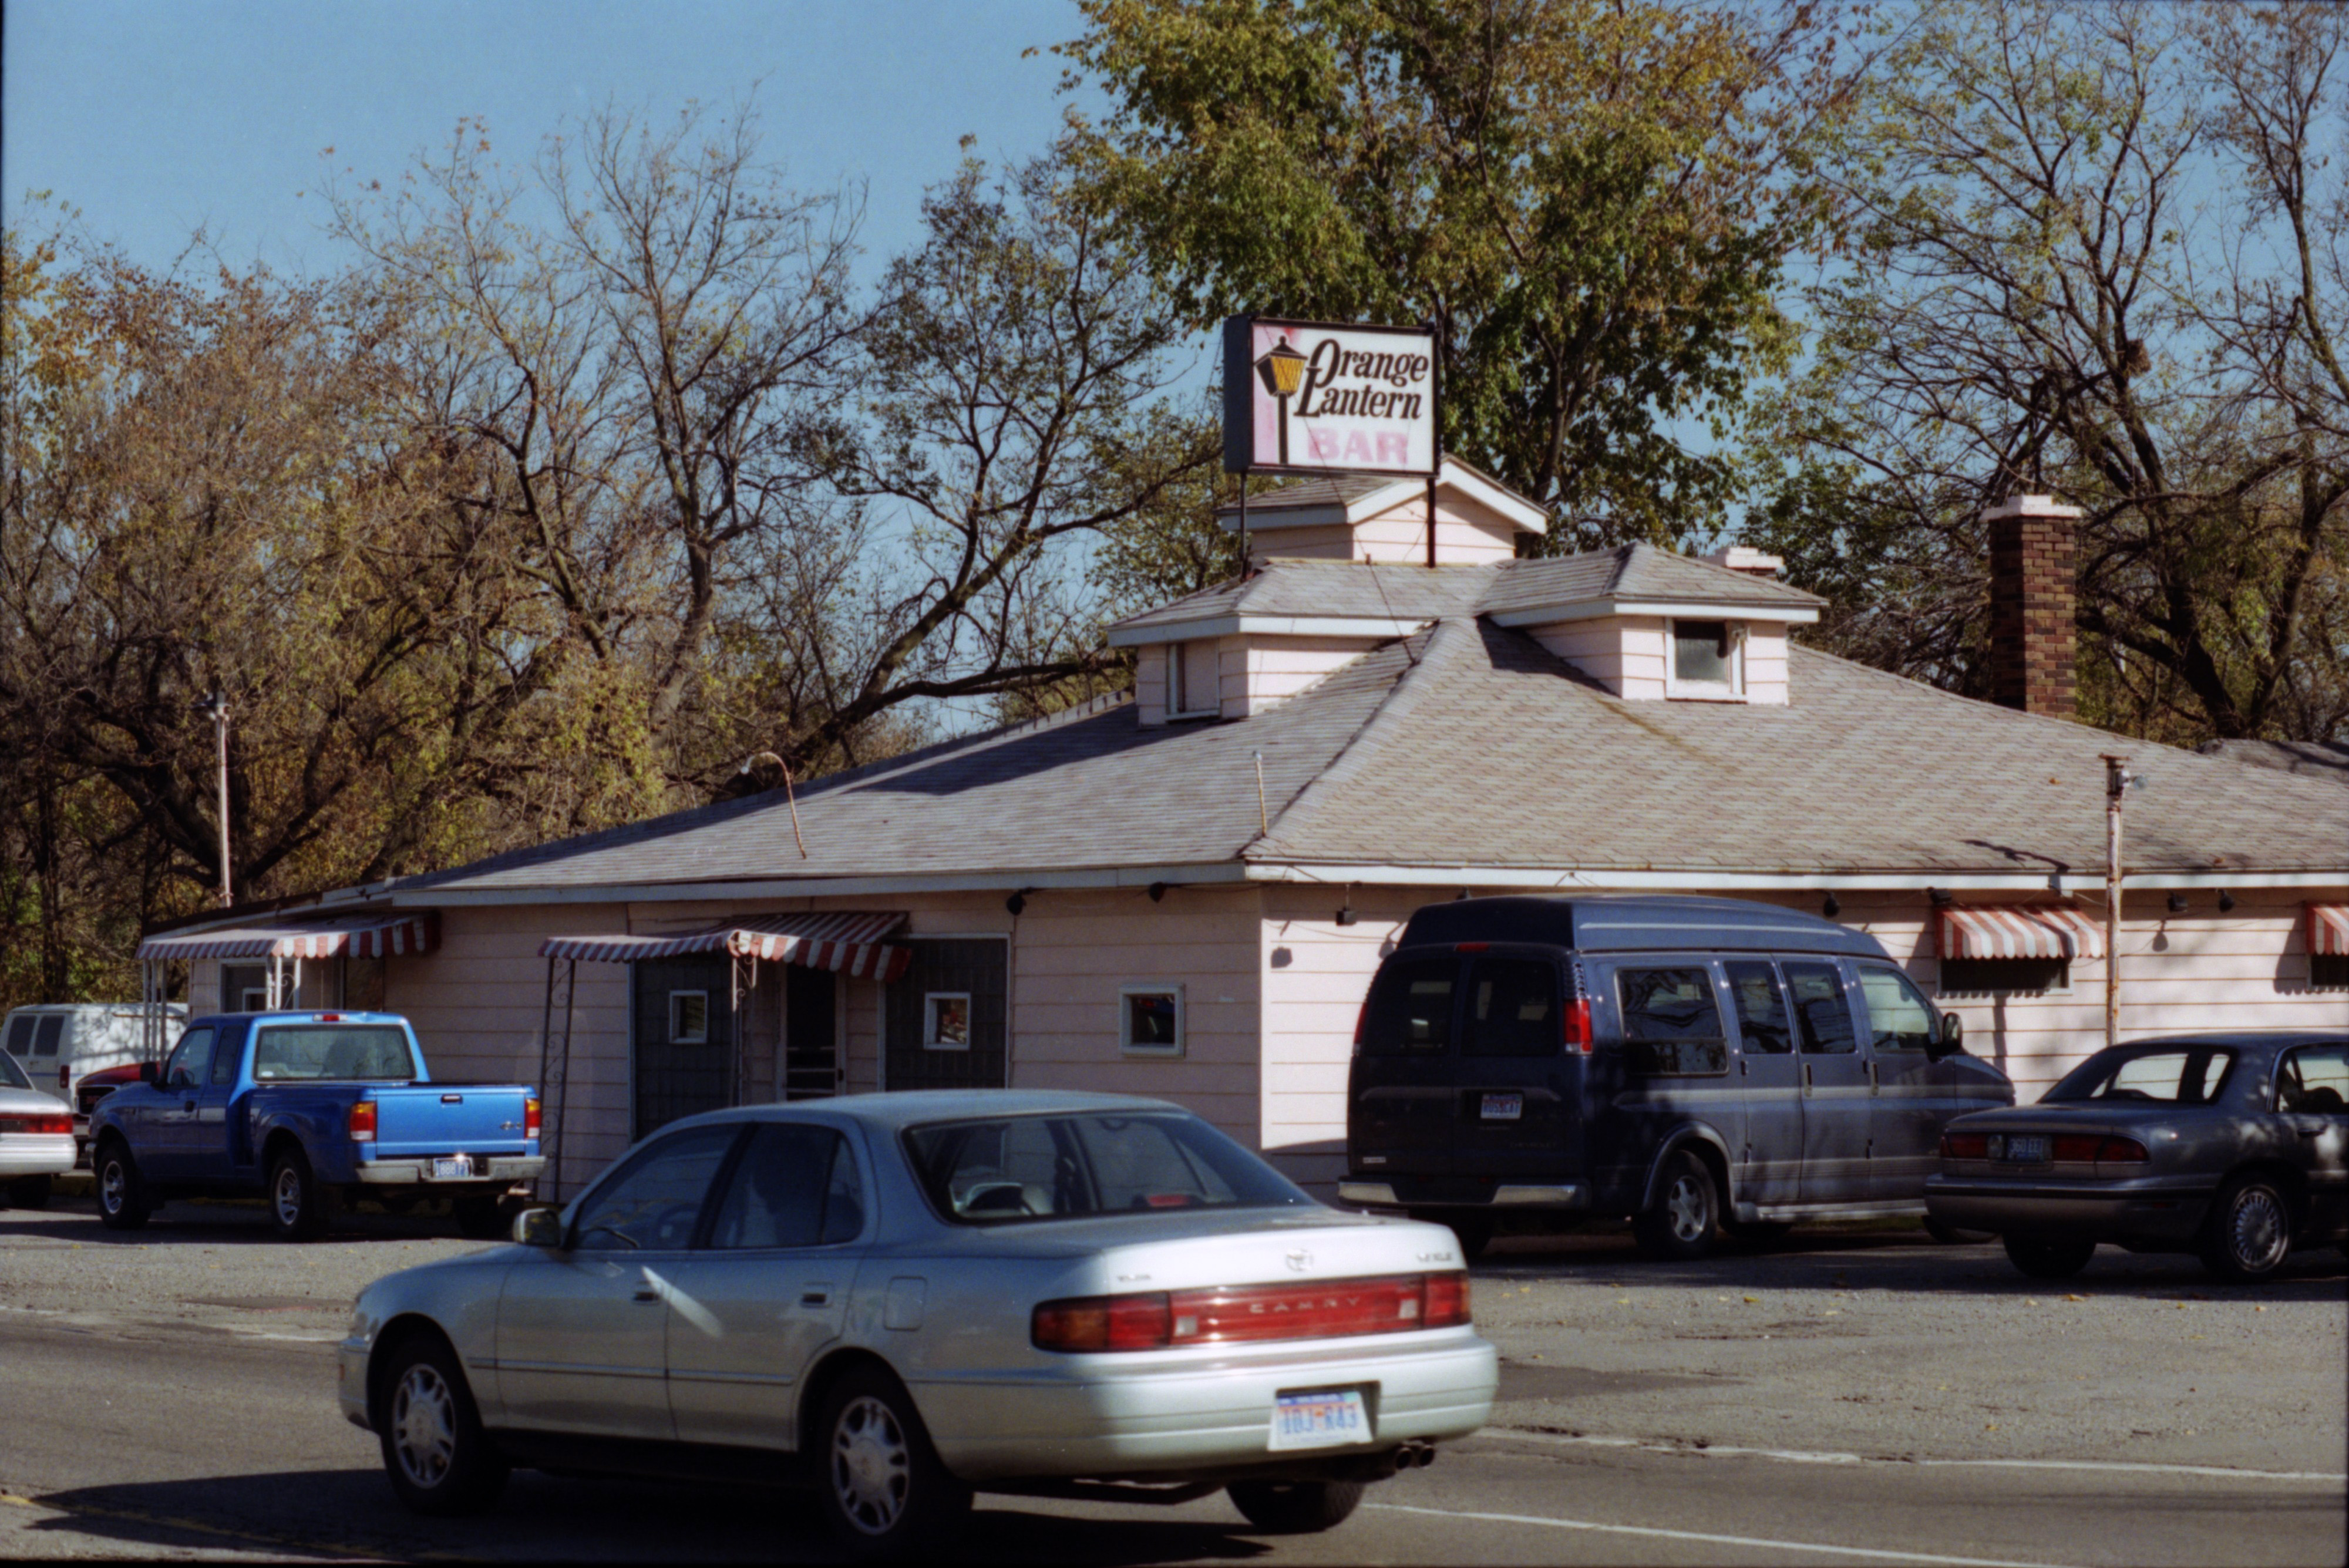 Exterior of Ypsilanti's Orange Lantern Bar on East Michigan Avenue, October 1999 image